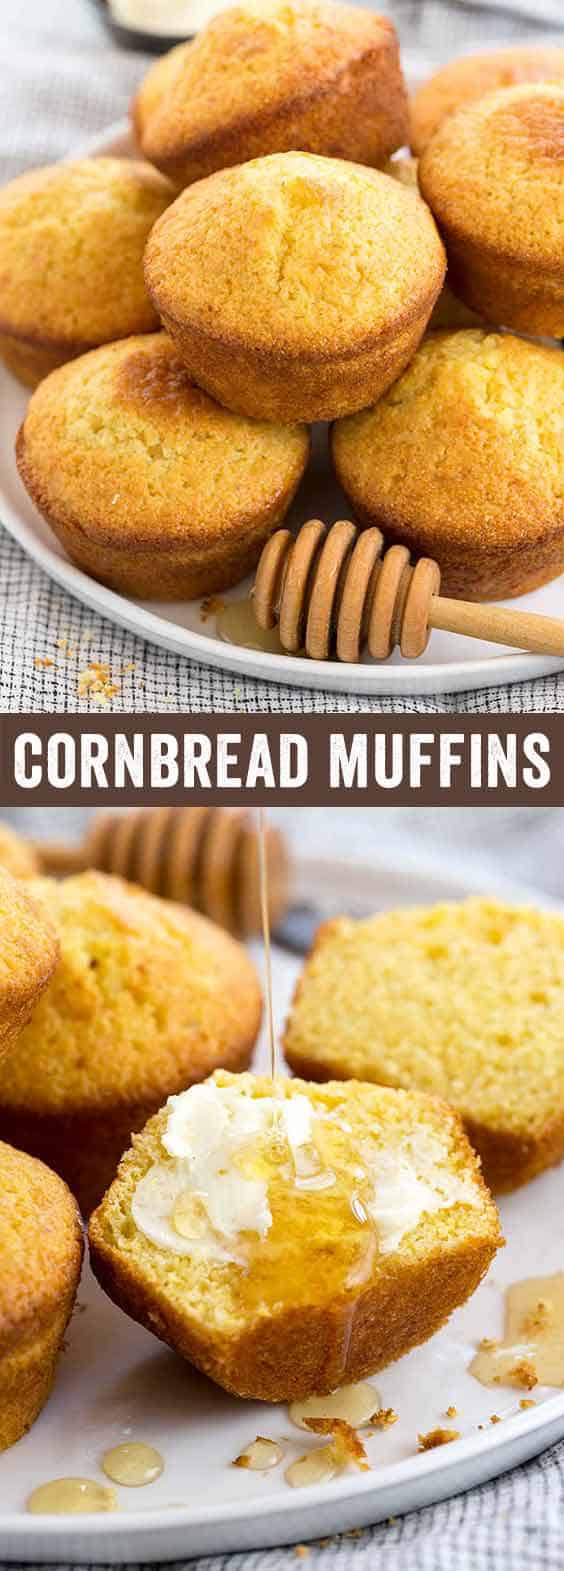 Cornbread Muffins Recipe  easy corn muffins recipe